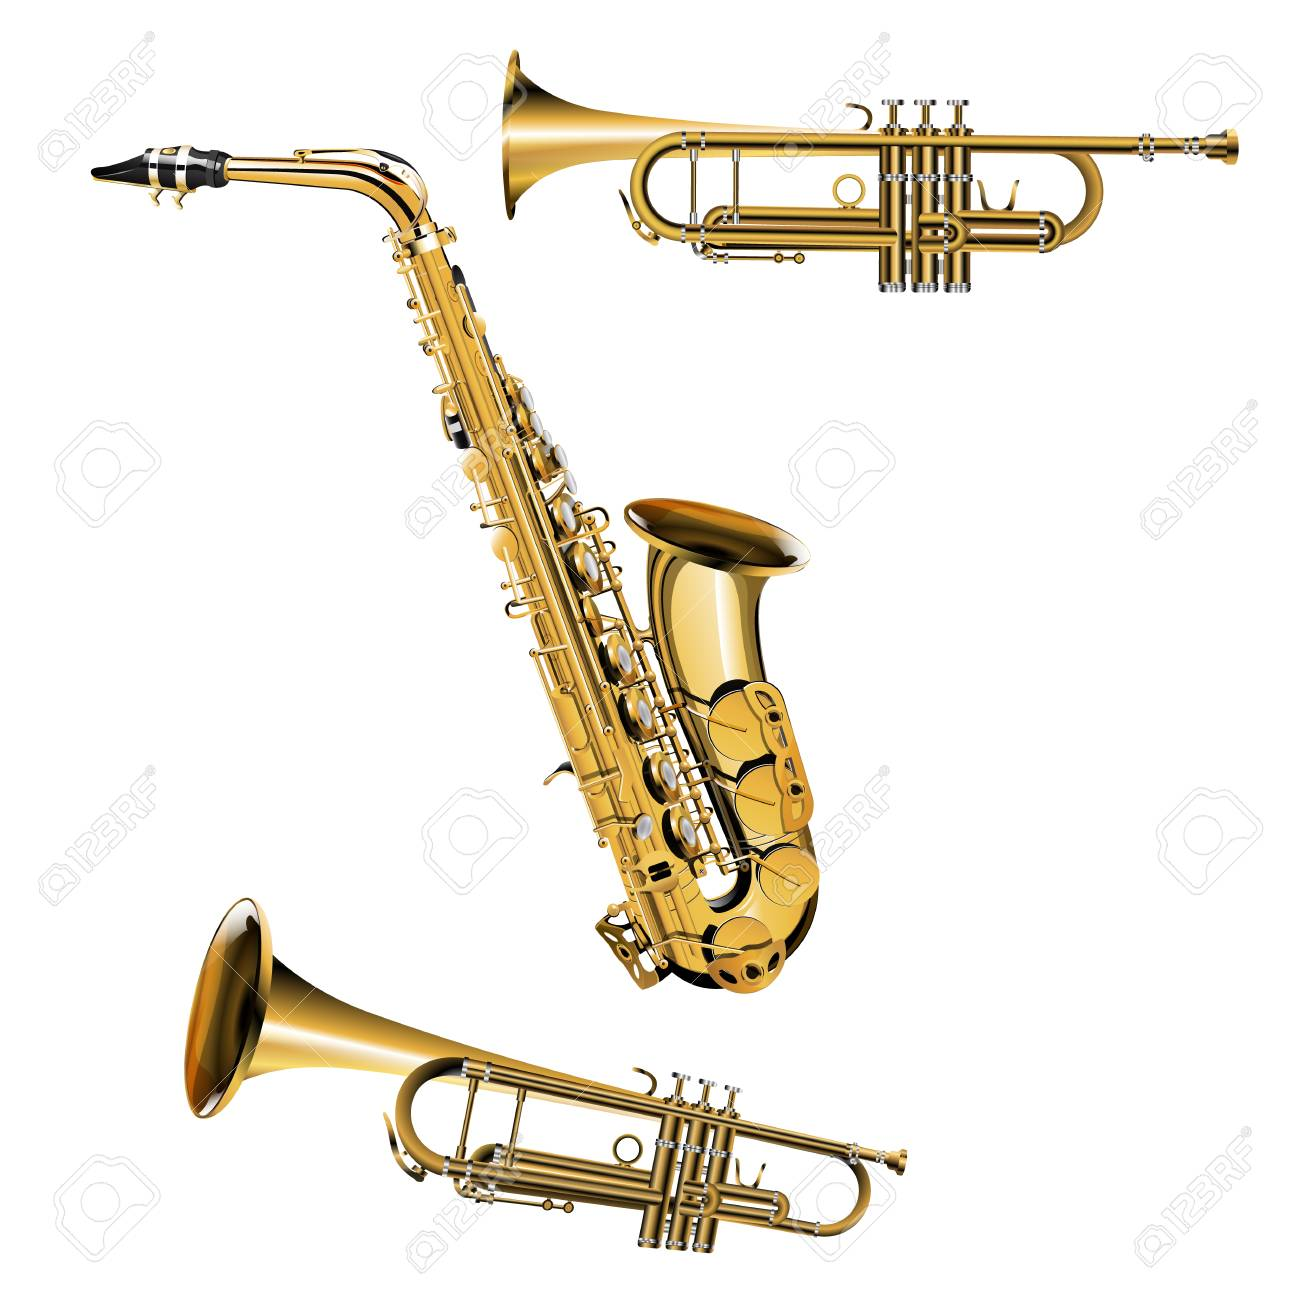 96085178-trumpet-and-saxophone.jpg